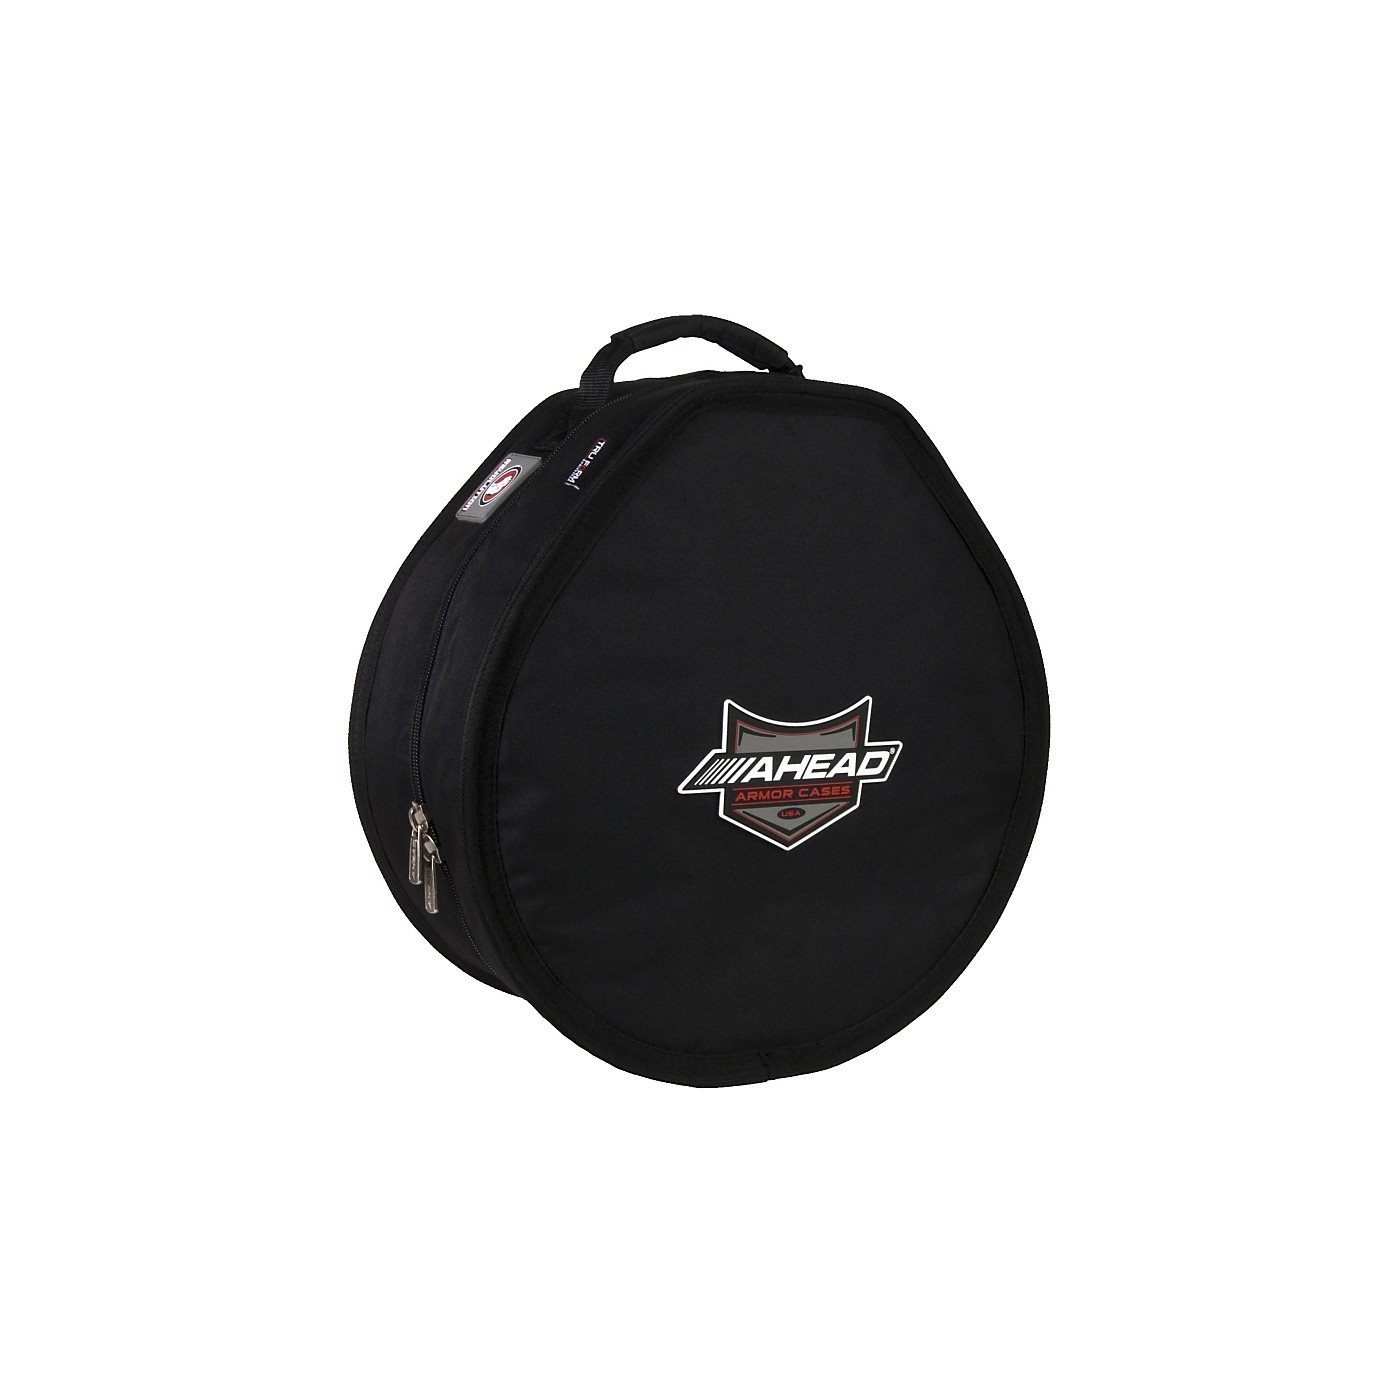 Ahead Armor Cases Free Floater Snare Case thumbnail